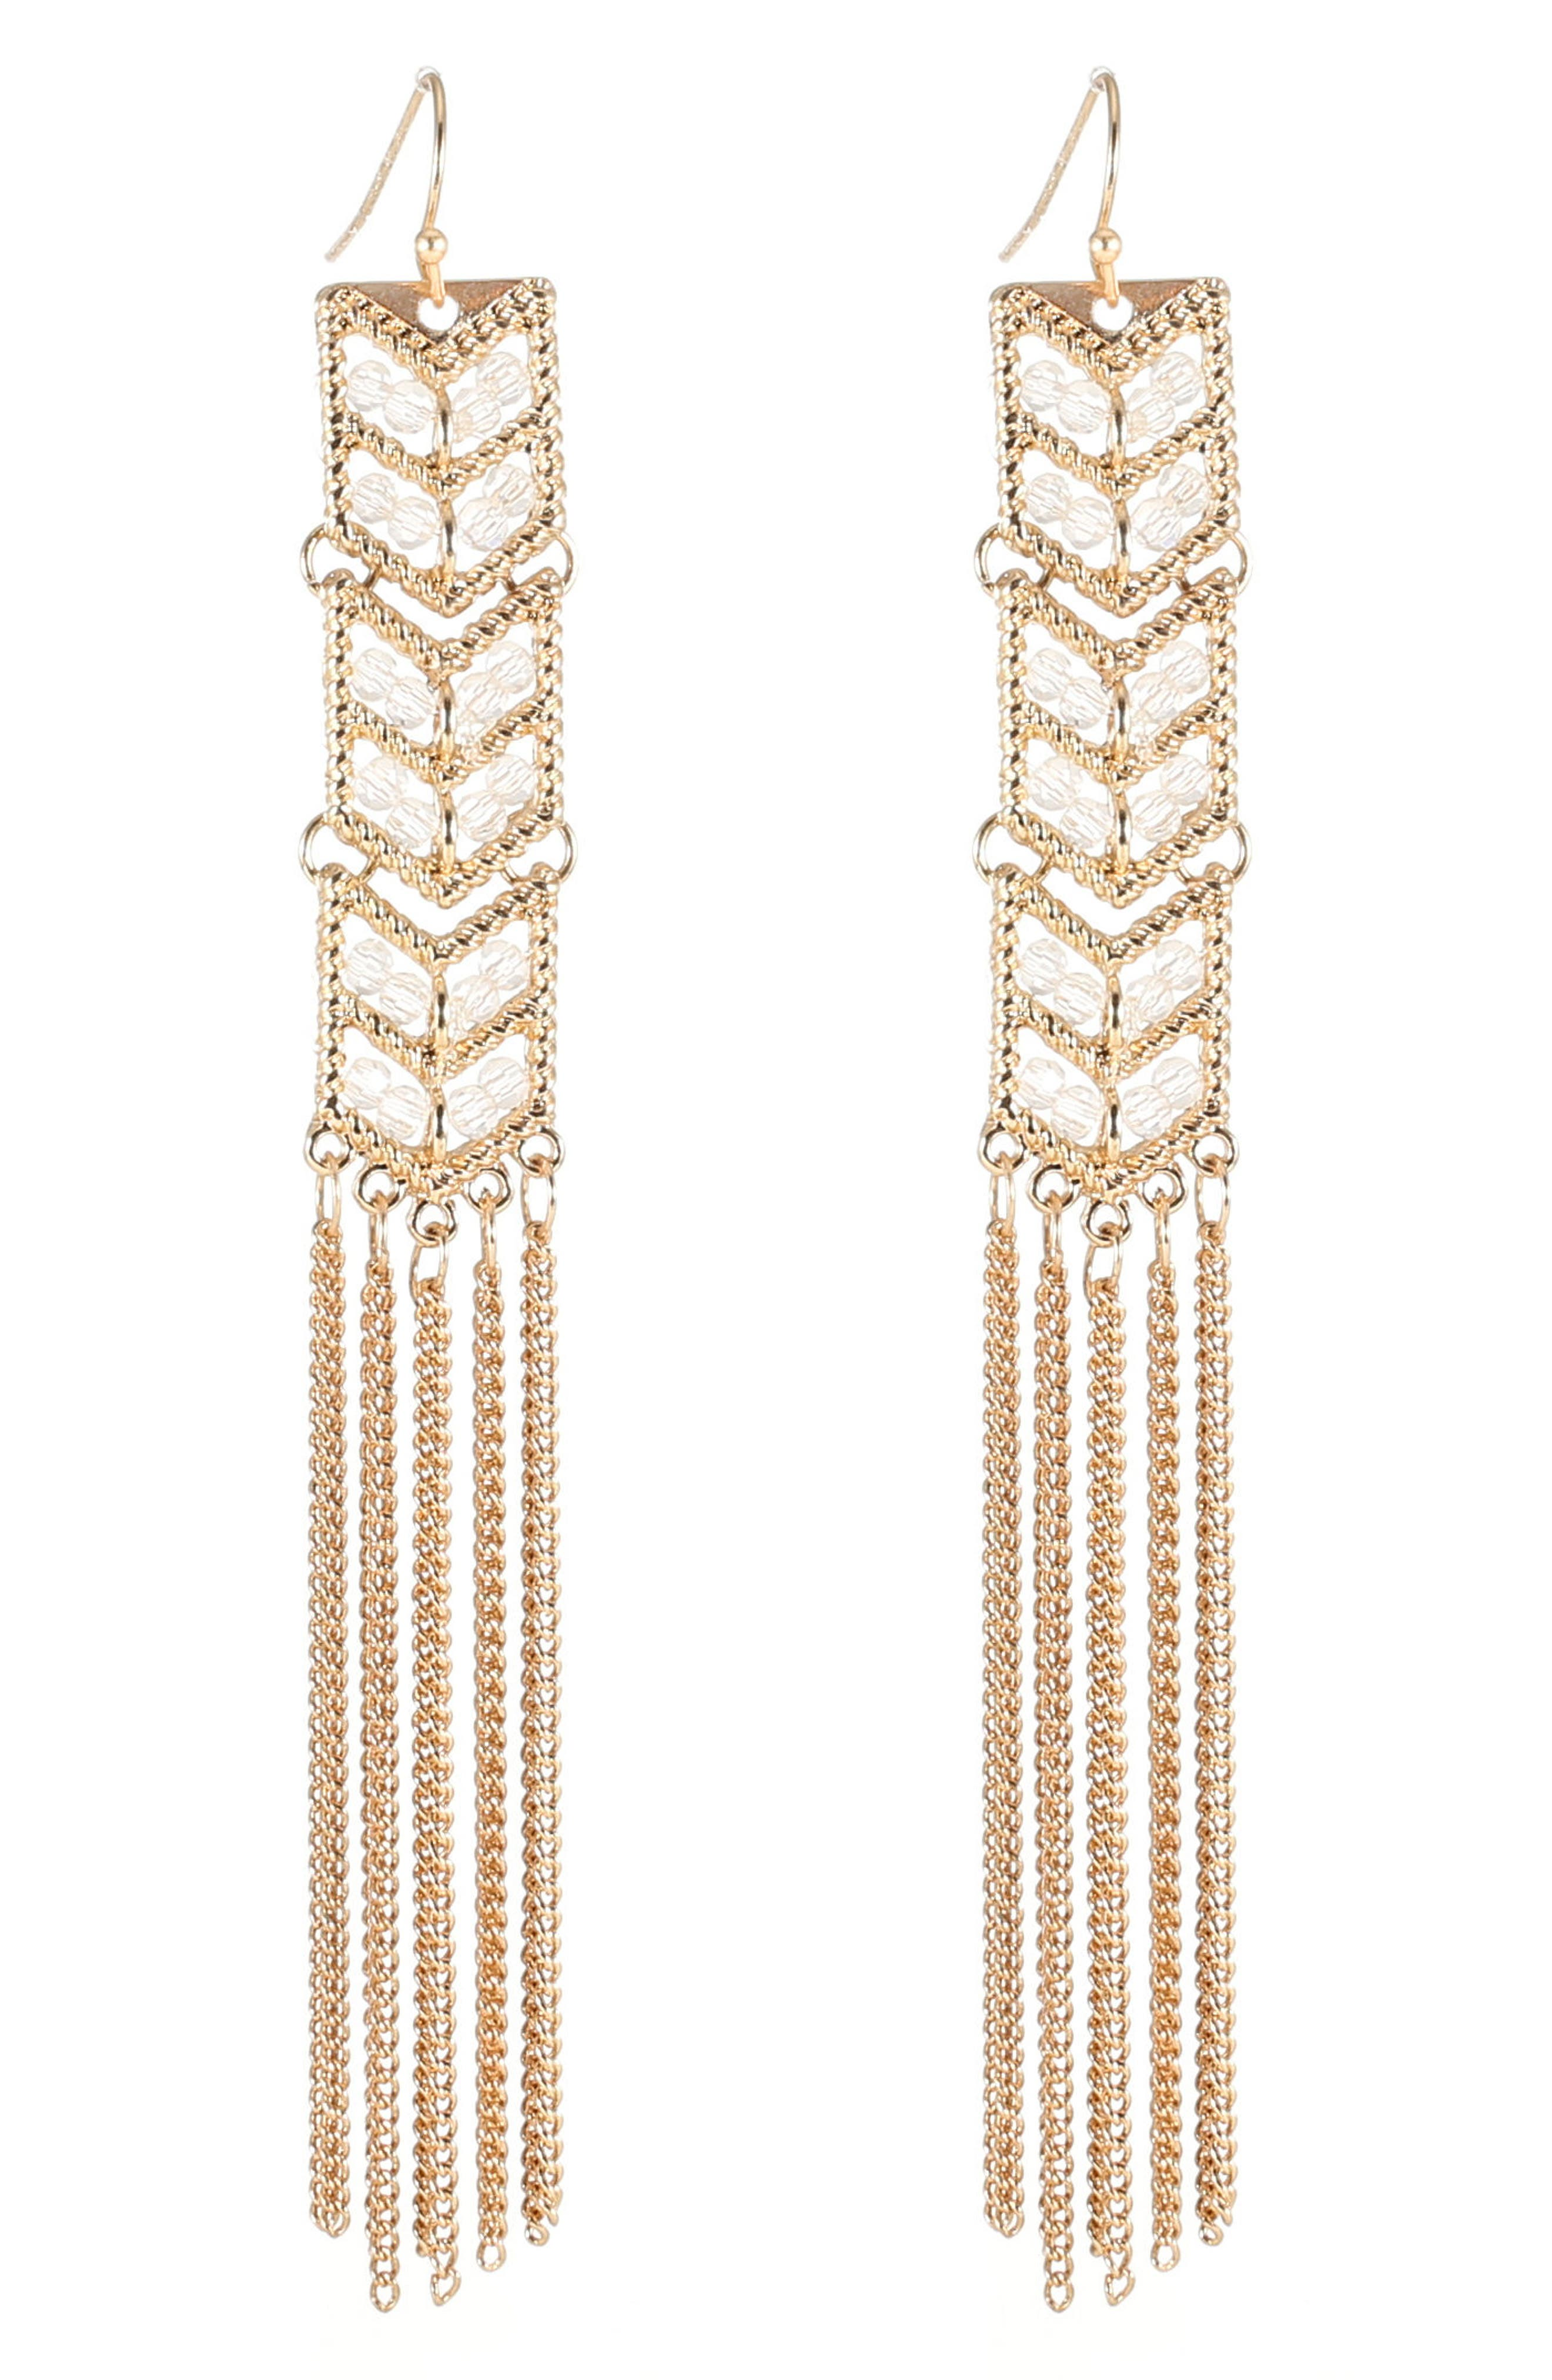 Tassel Chain Statement Earrings,                         Main,                         color, Gold